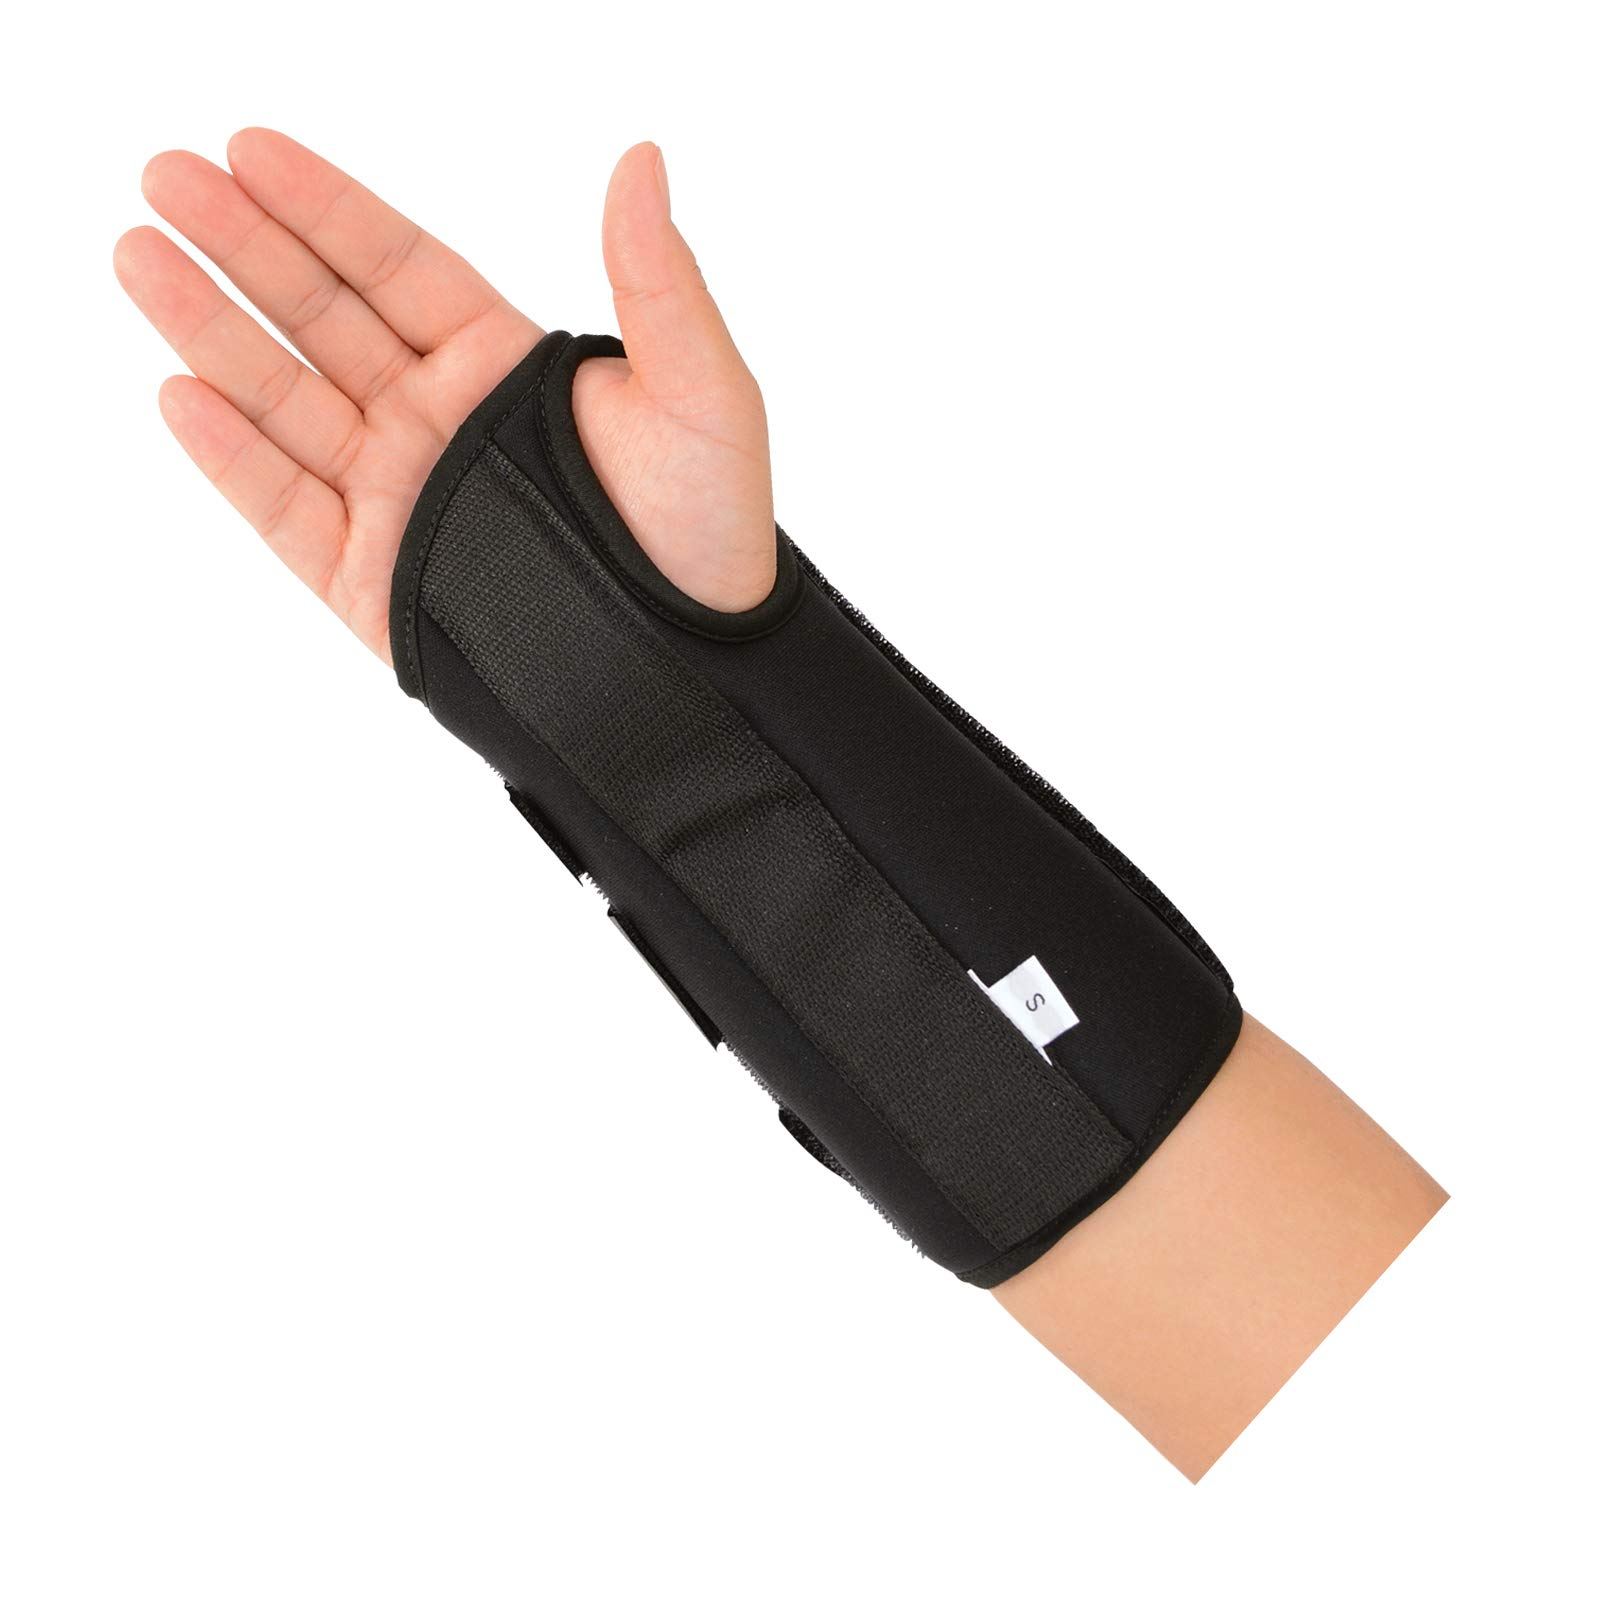 """Sammons Preston 8"""" R-Soft Wrist Support, Right, Extra-Large, Stabilization Splint and Immobilizer for Healing and Recovery of the Hand, Arm, and Wrist, Open Hand Mobility Design for Range of Motion"""